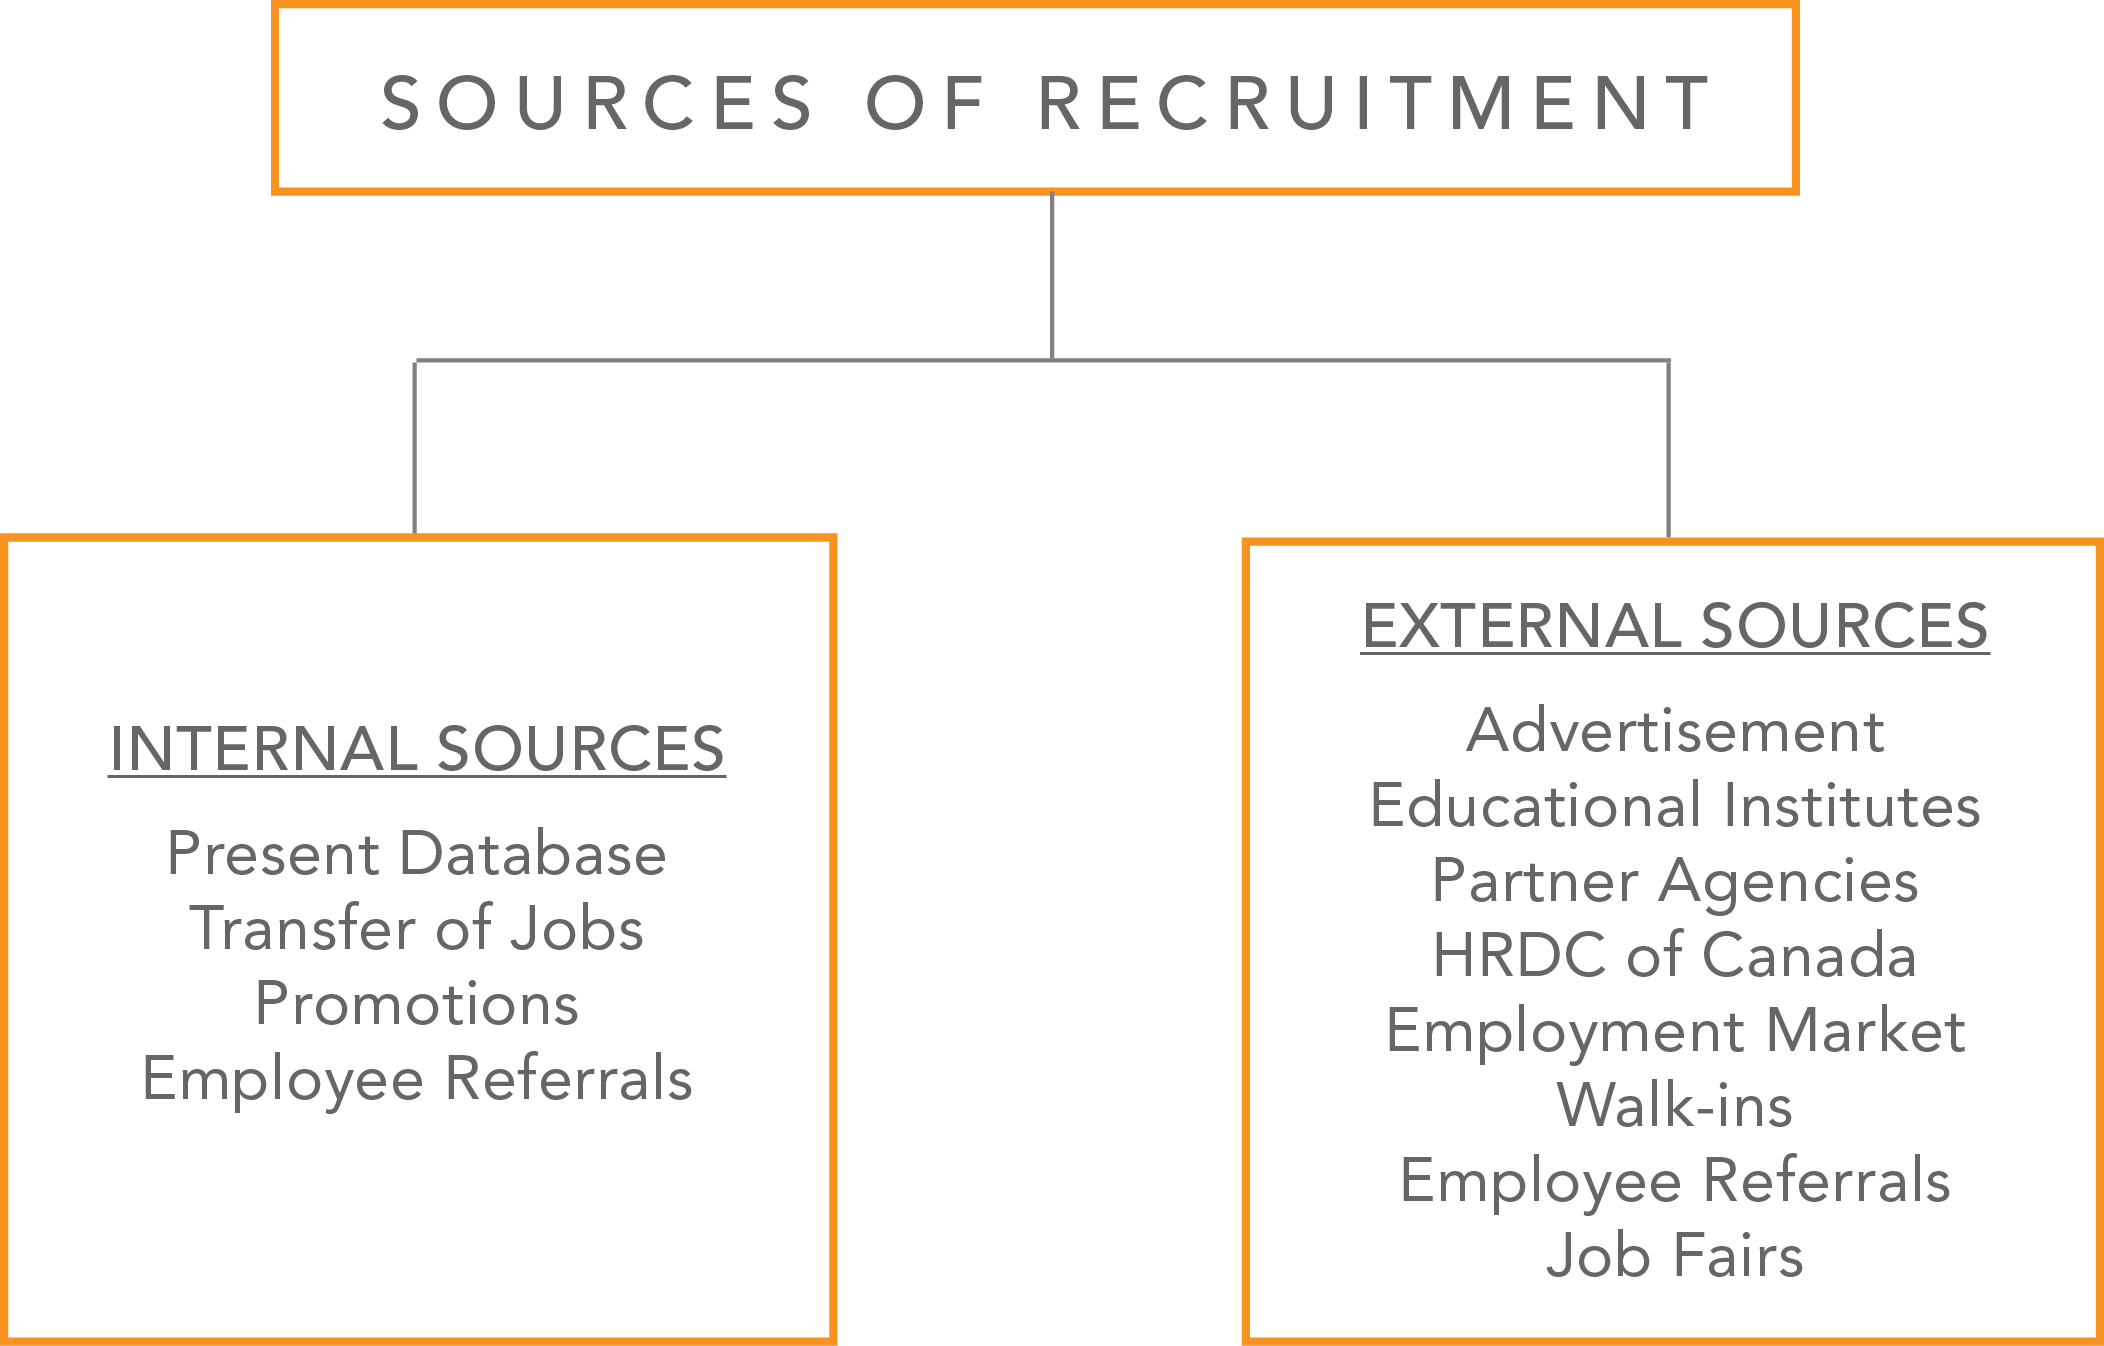 M&M sources of recruitment which include both internal and external sources.